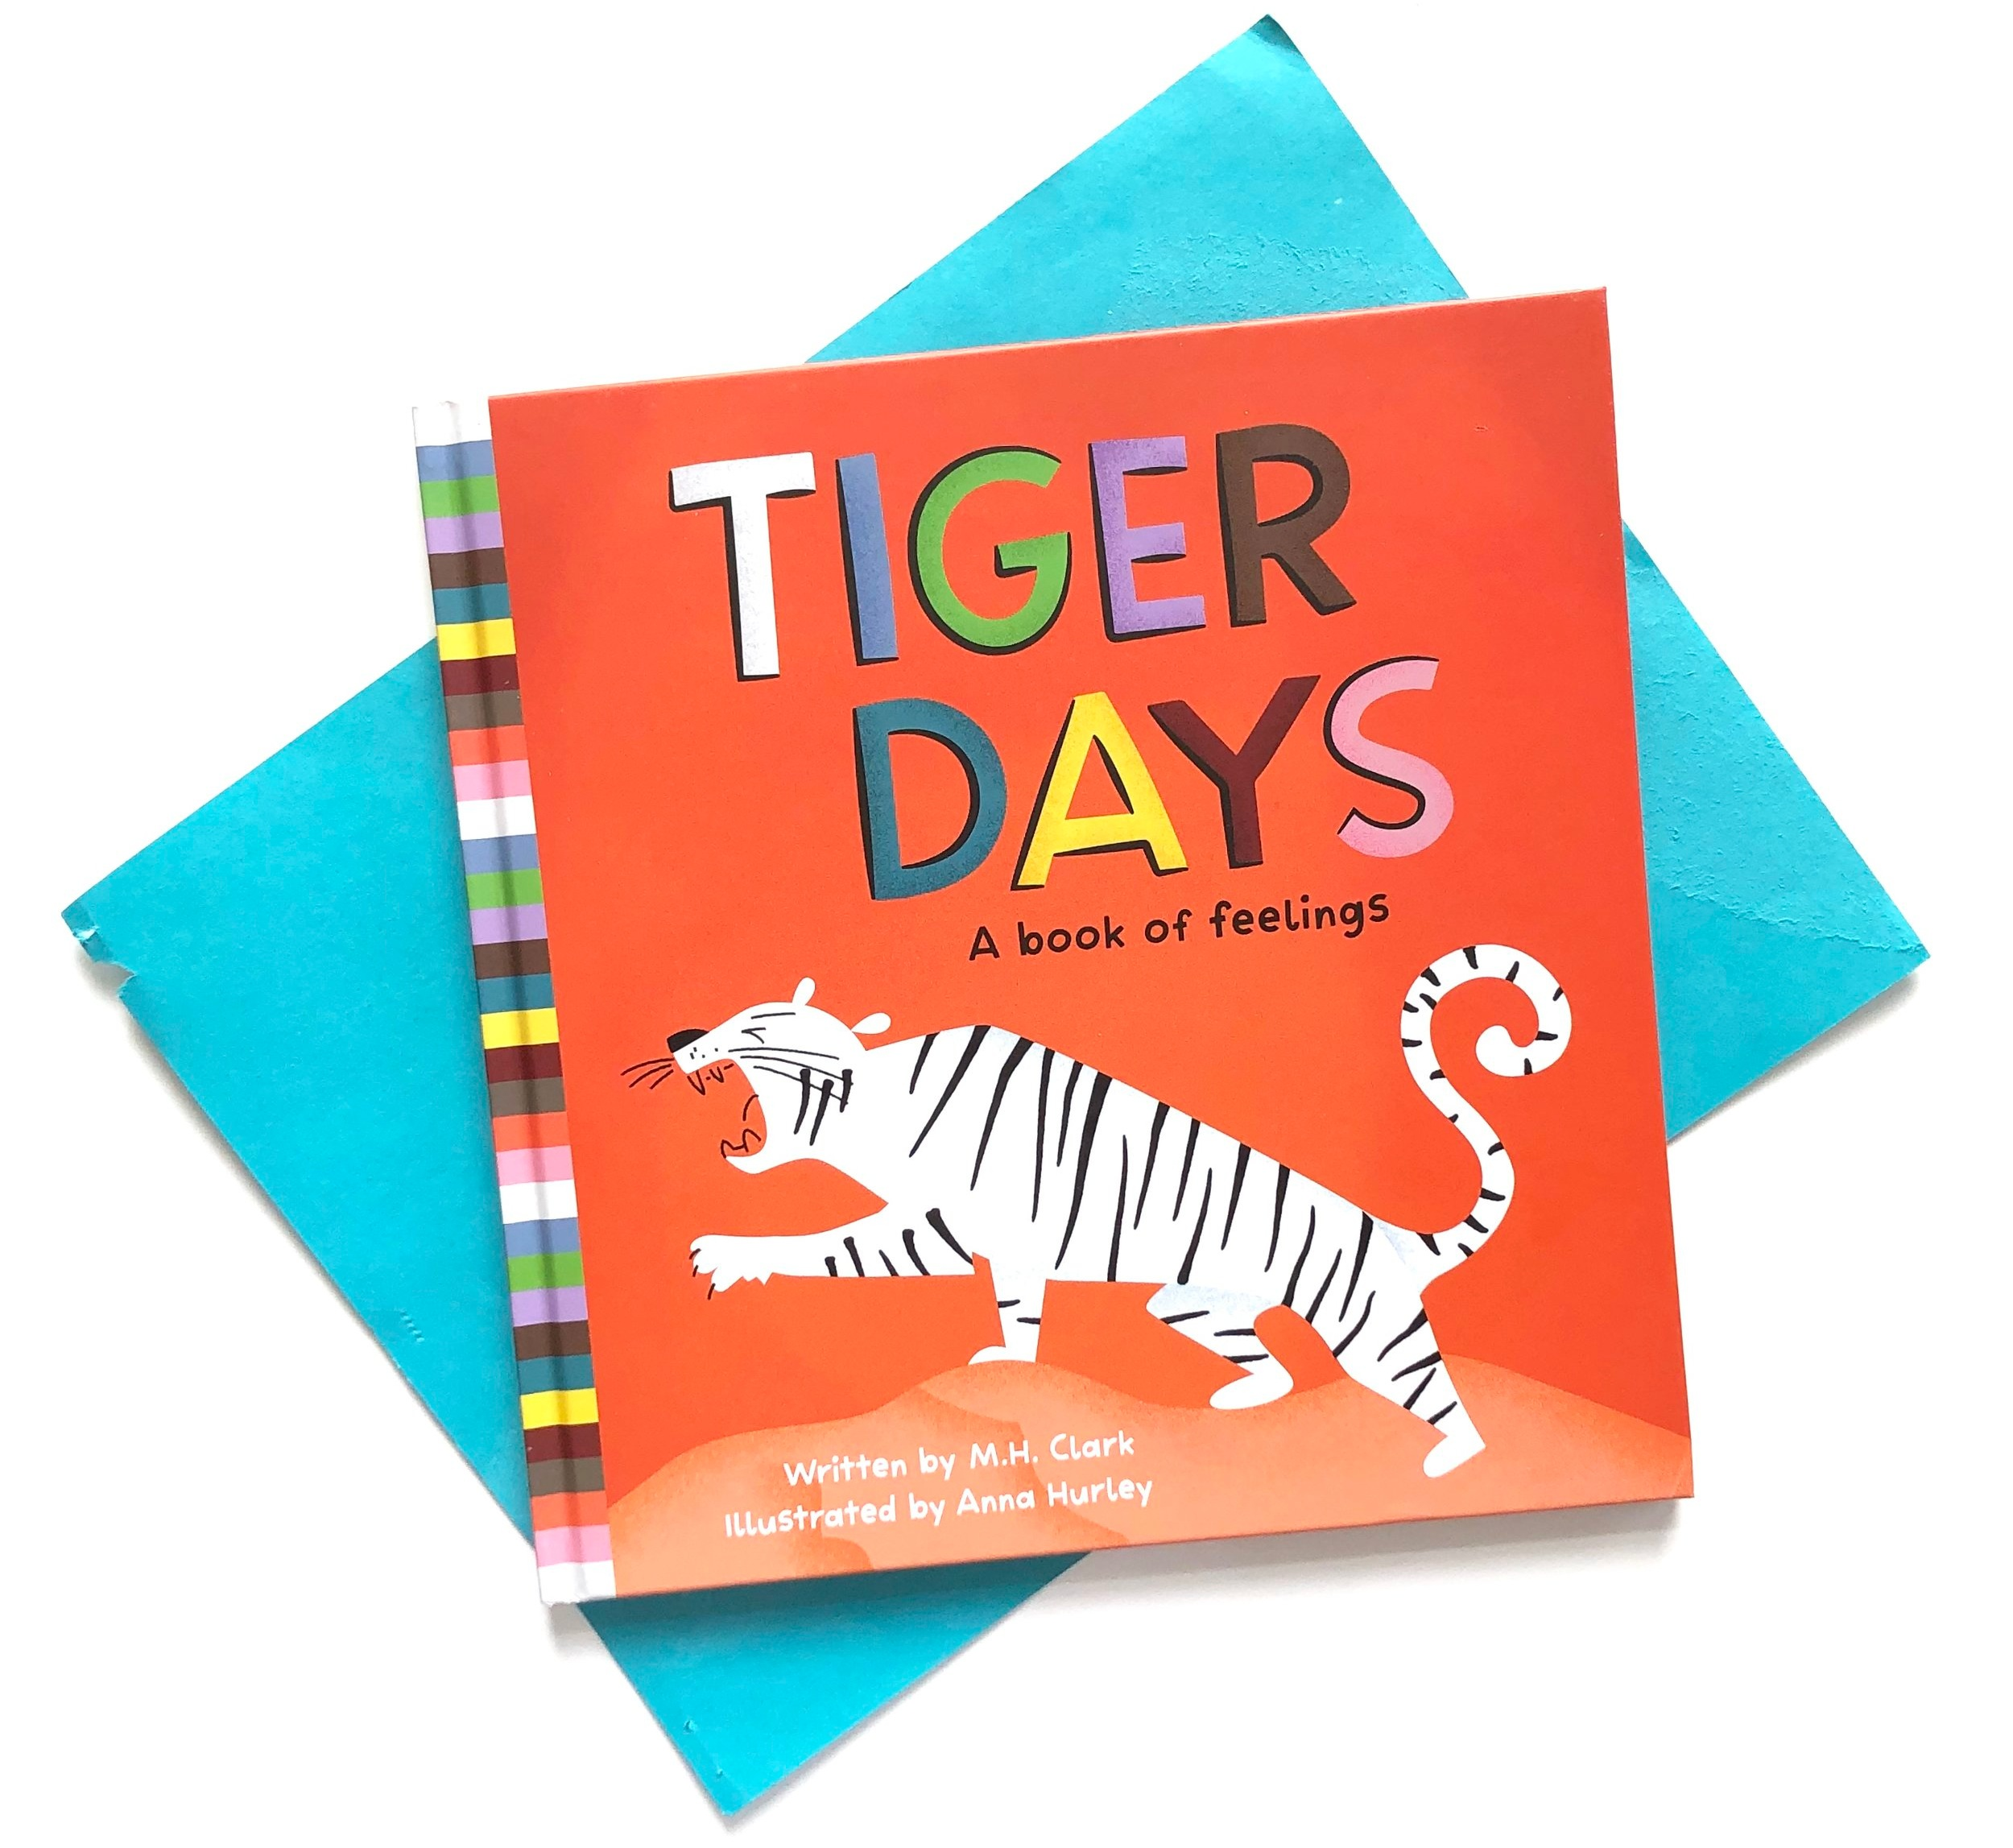 Tiger Days, A Book of Feelings by M.H. Clark and illustrated by Anna Hurley